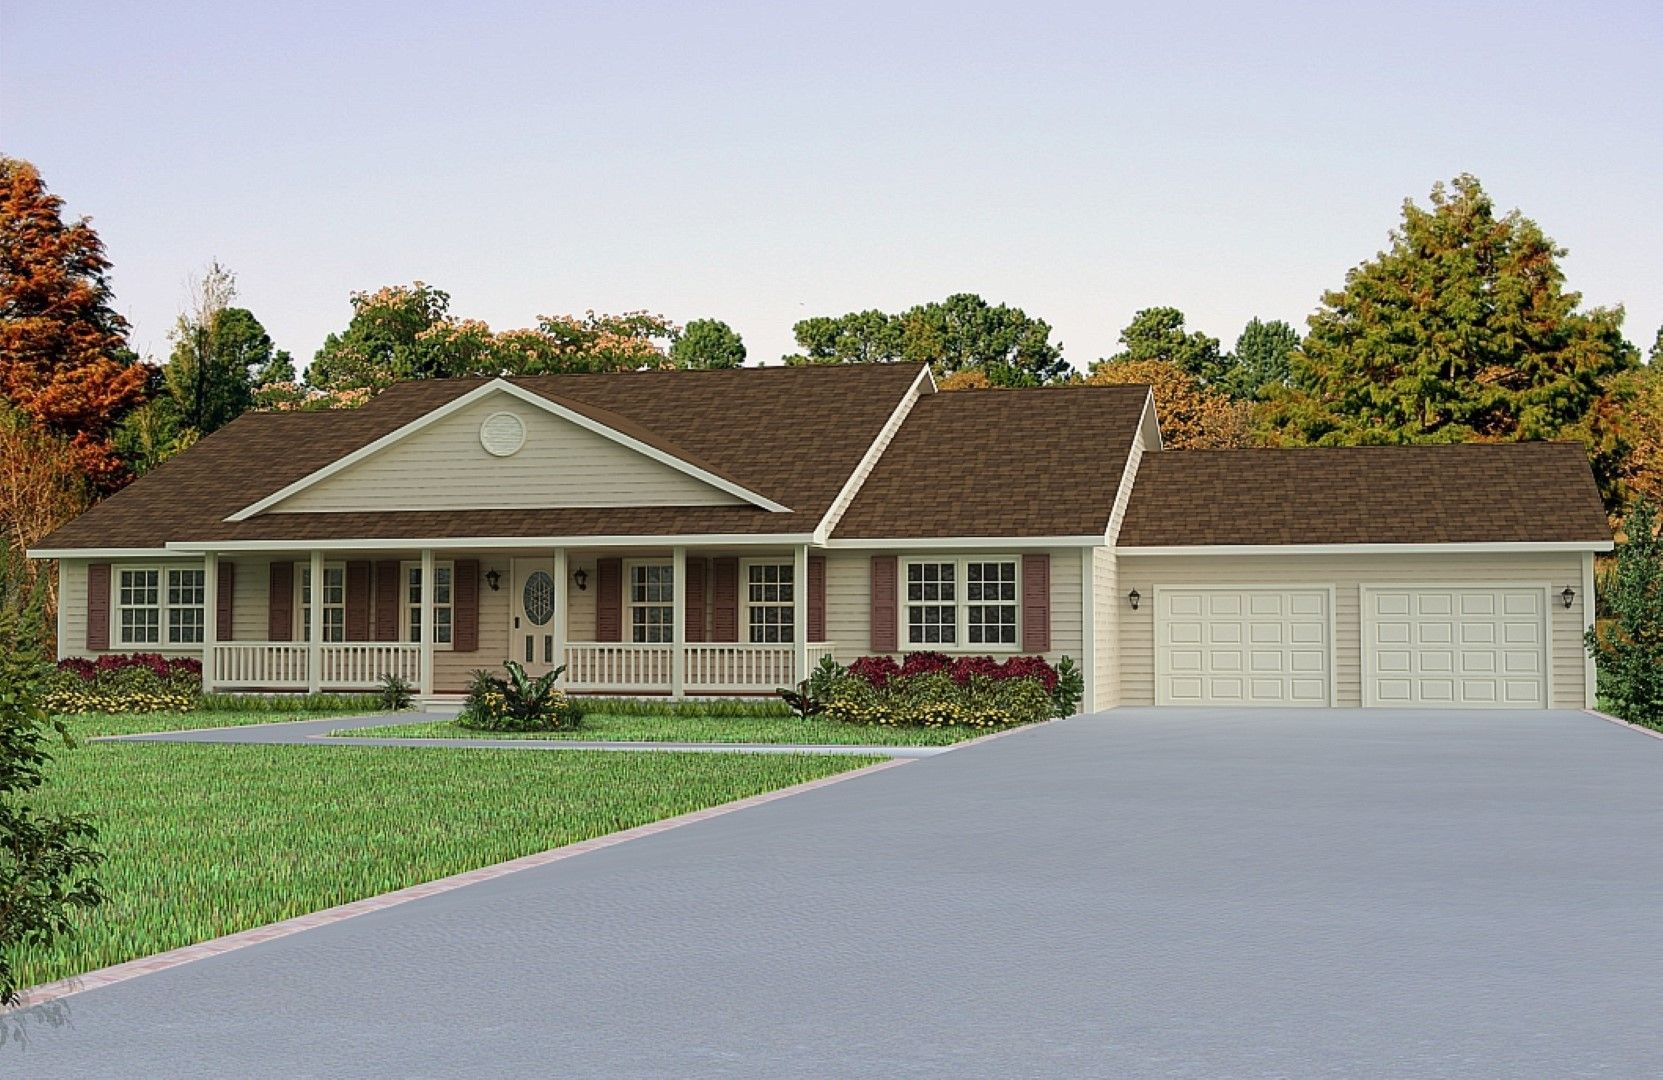 Home Plans Ranch Style House Plans Ranch Style Homes Ranch House Designs